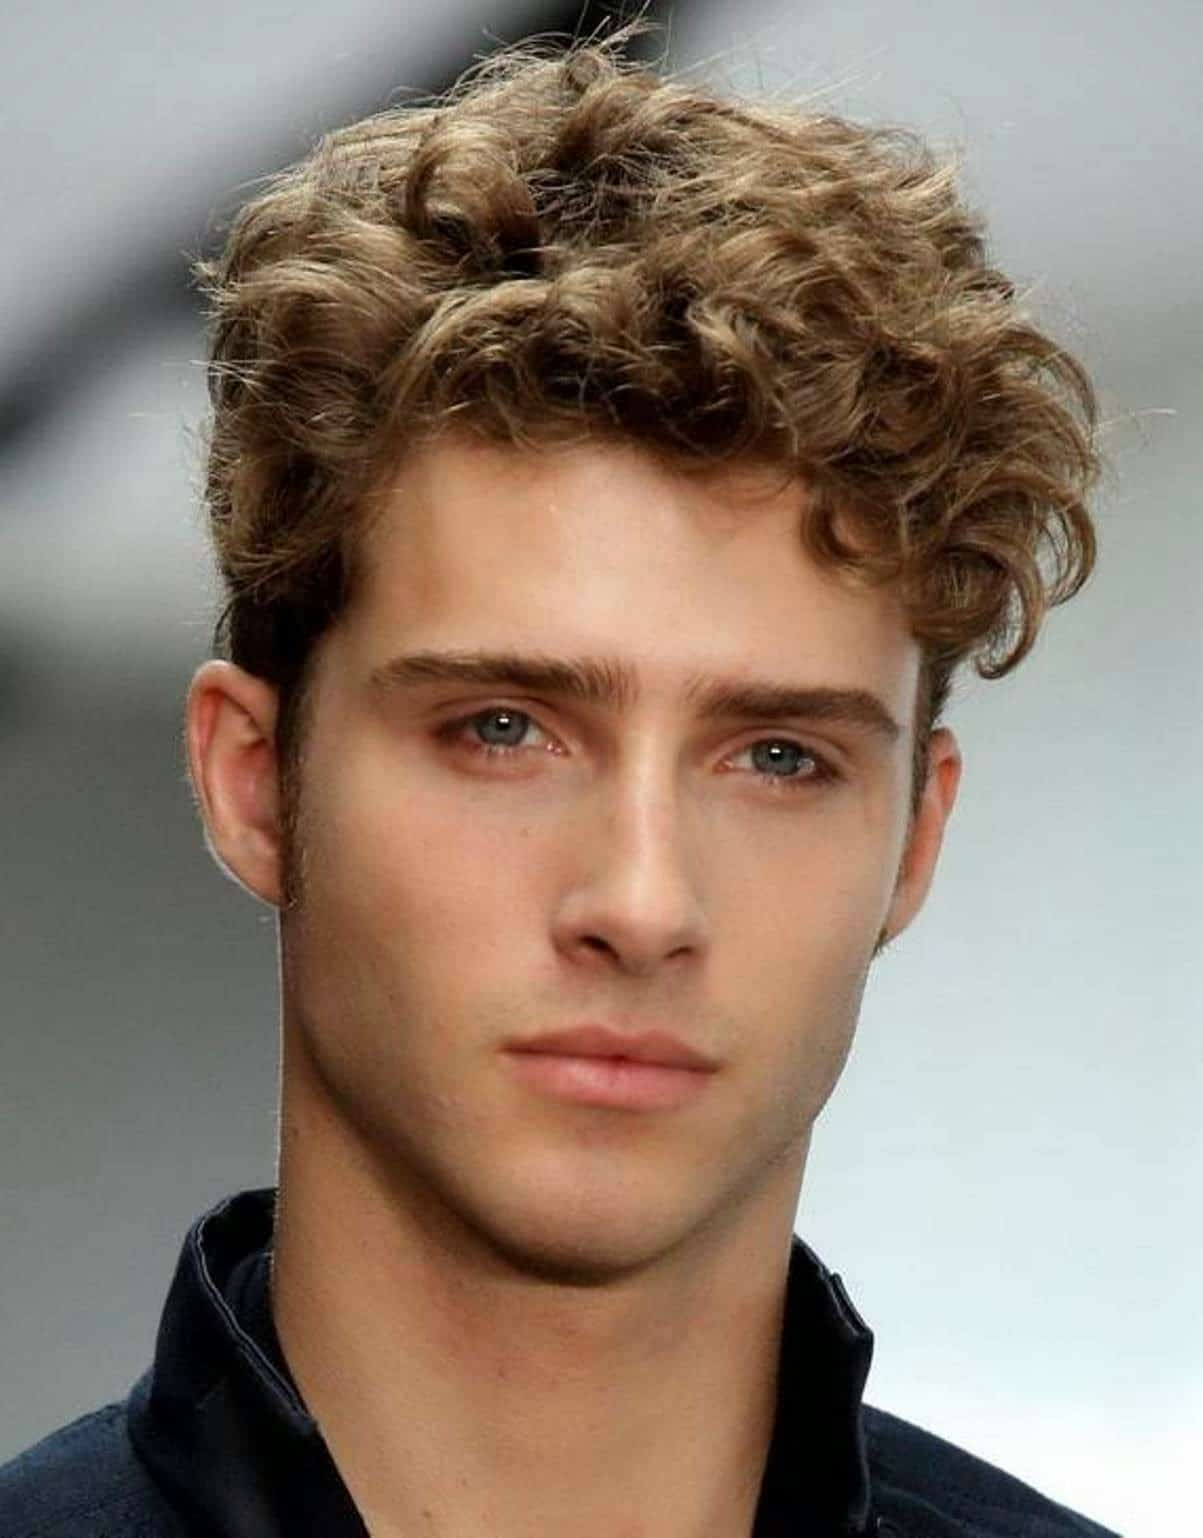 Hairstyles for Boys with Curly Hair